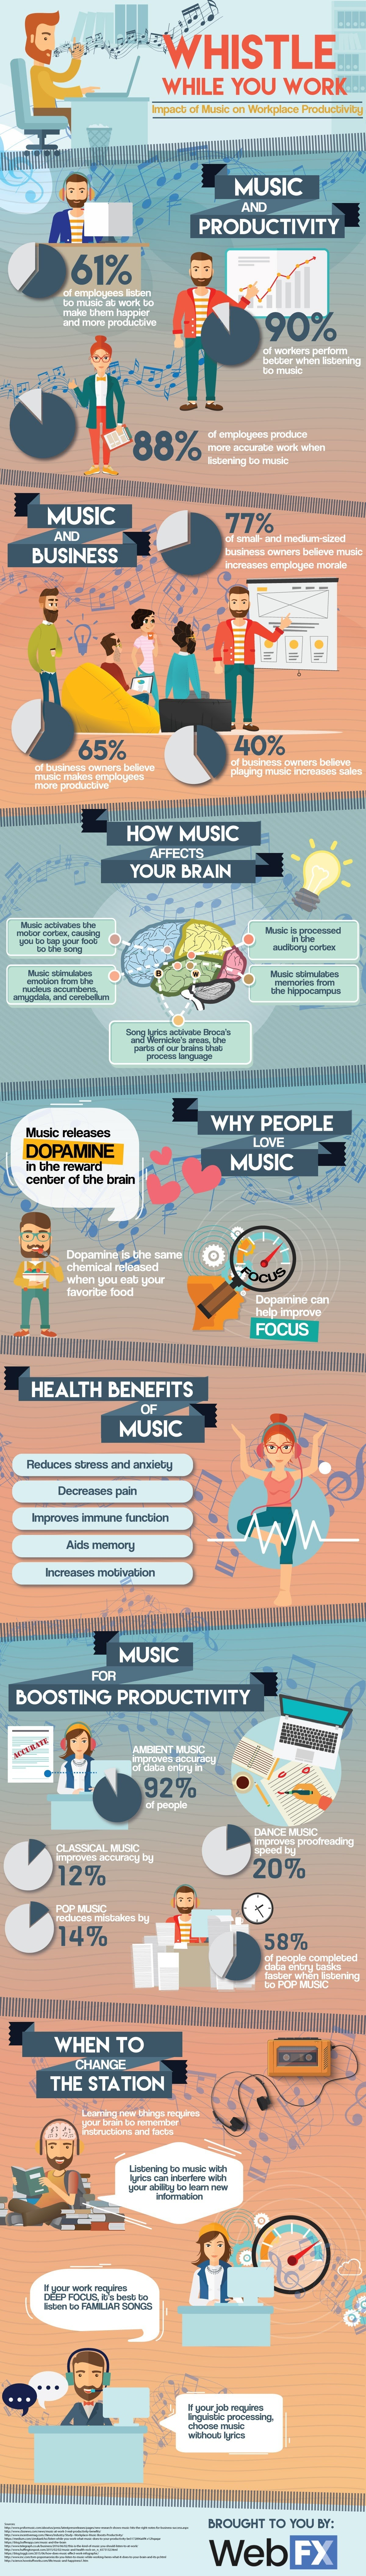 Whistle While You Work: Impact of Music on Productivity #infographic